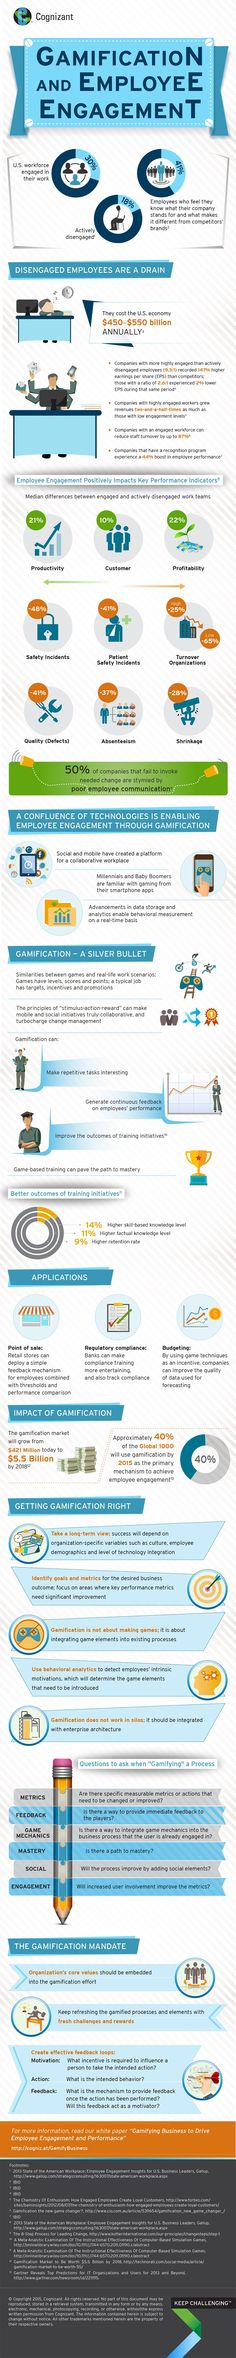 Gamification Is The Key To Employee Engagement [Infographic] - openreq